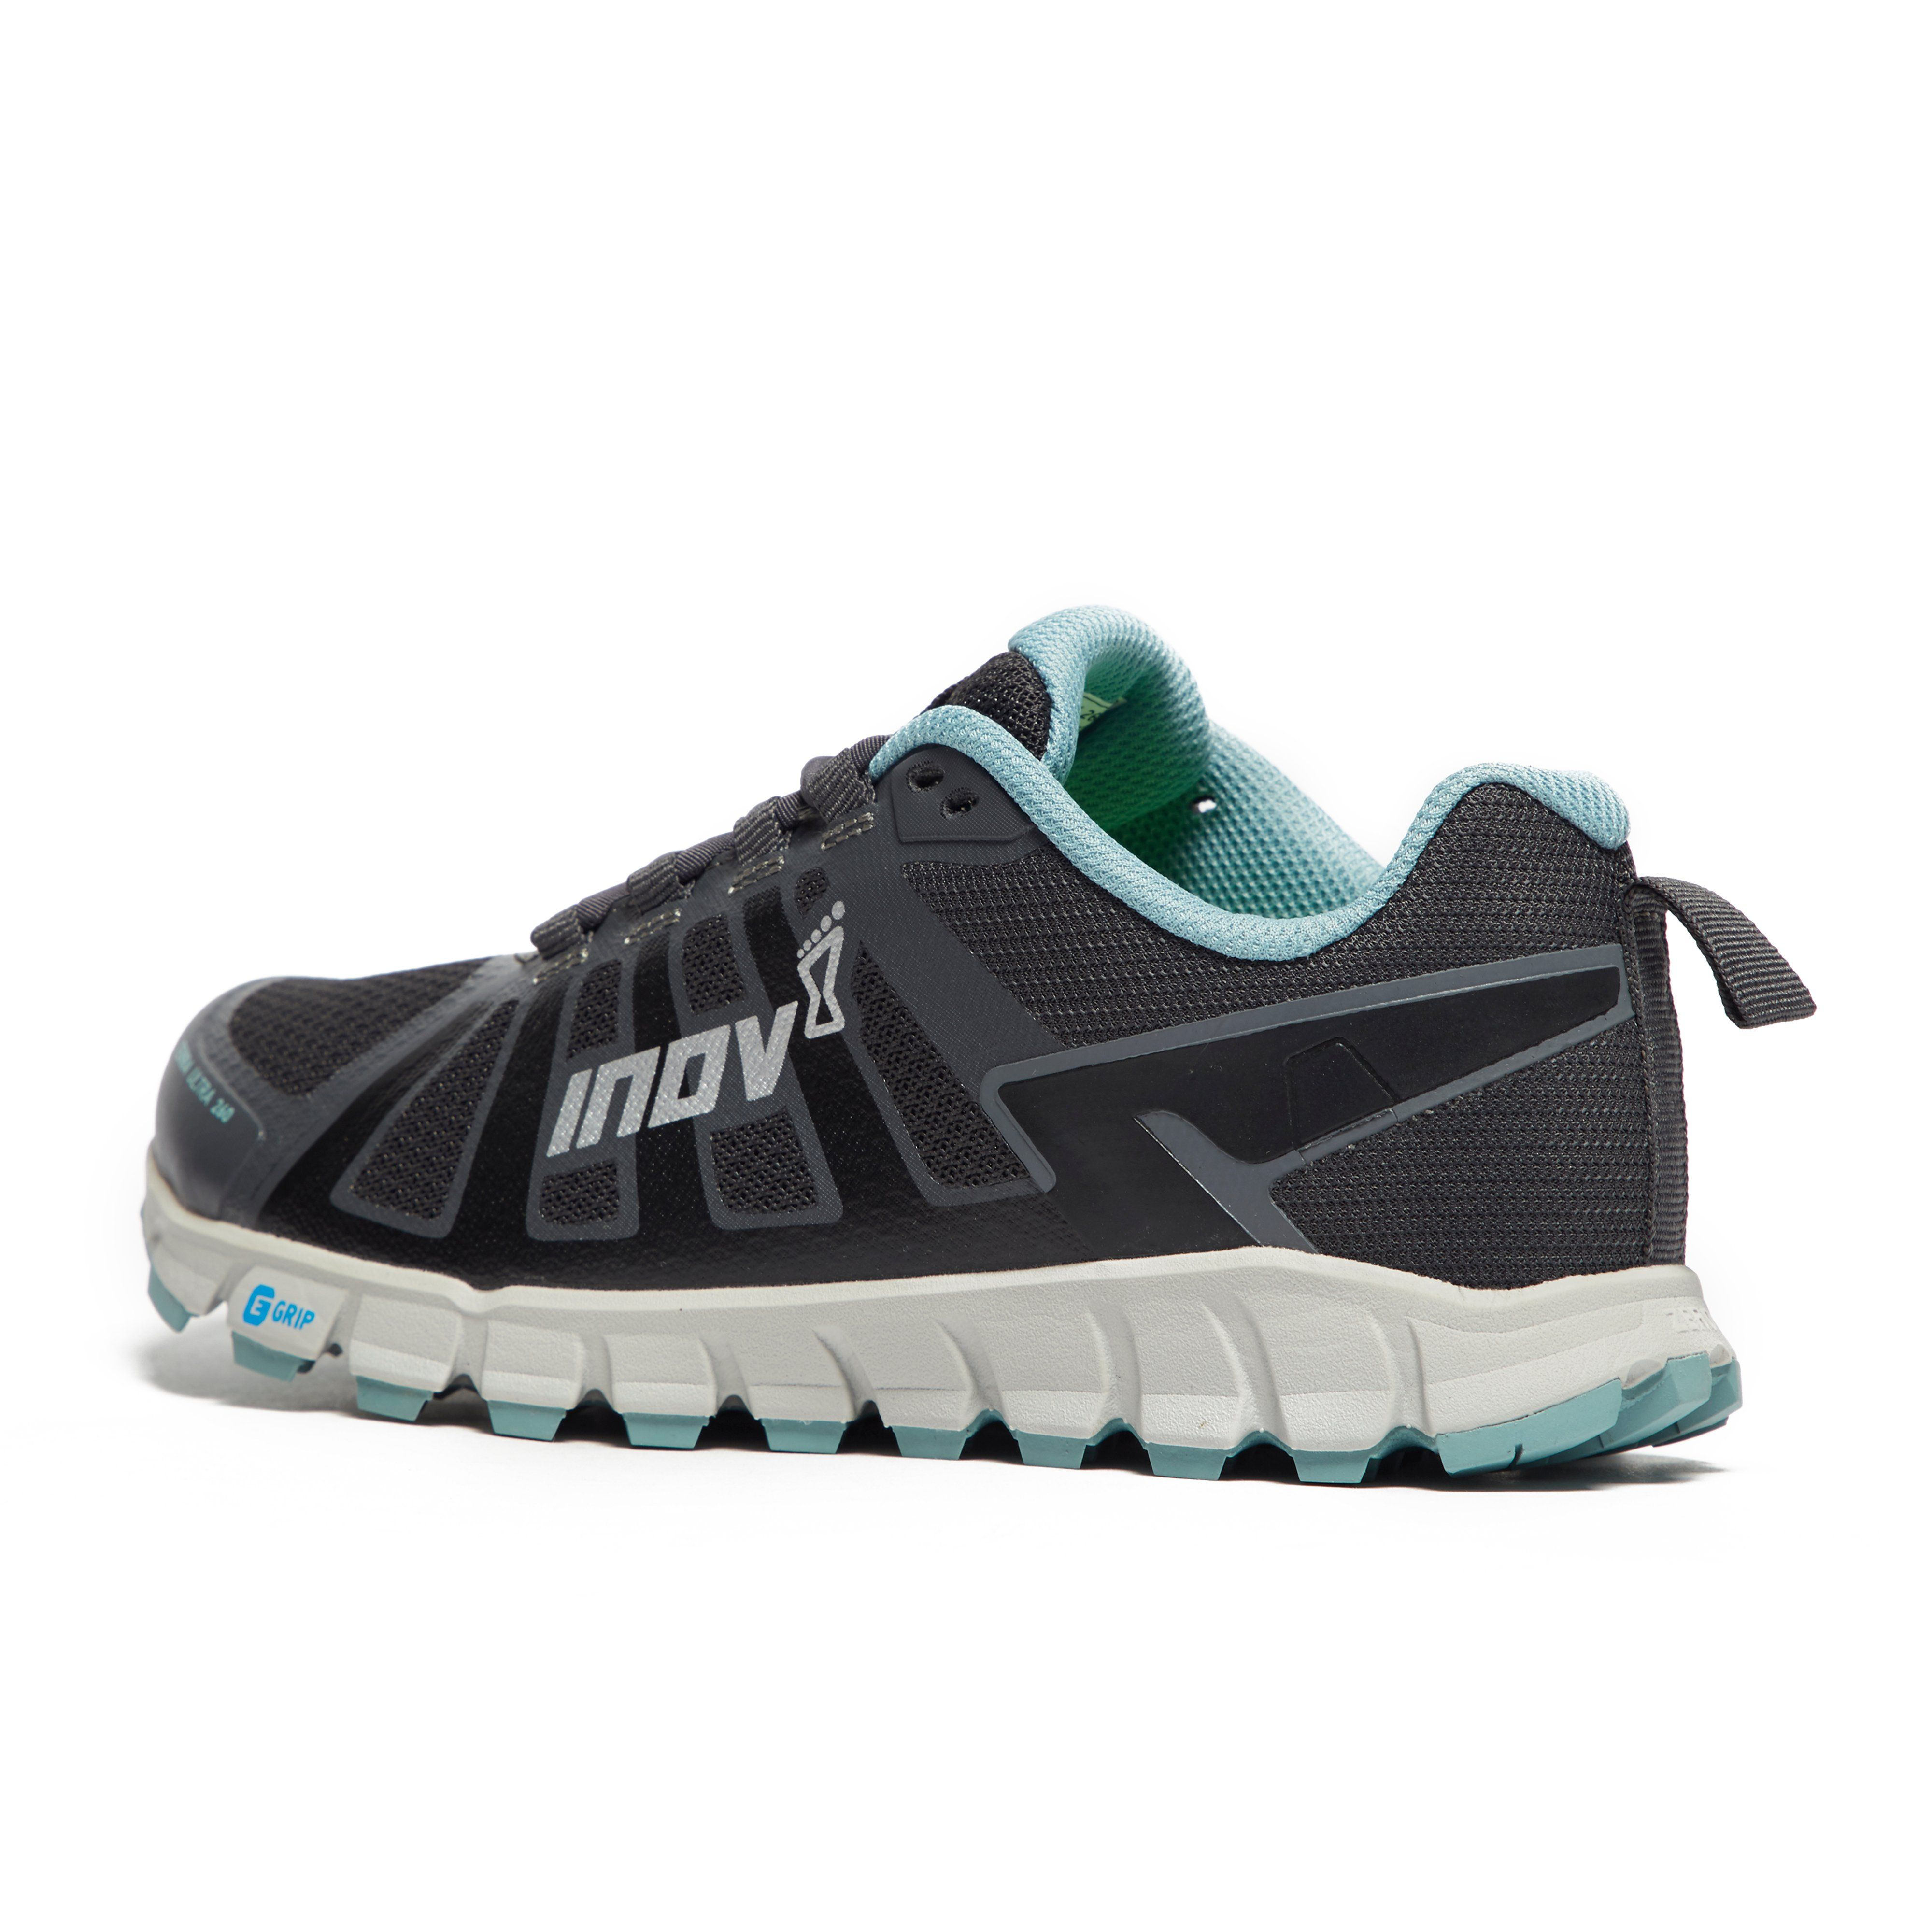 Inov-8 Terraultra 260 Women's Trail Running Shoes